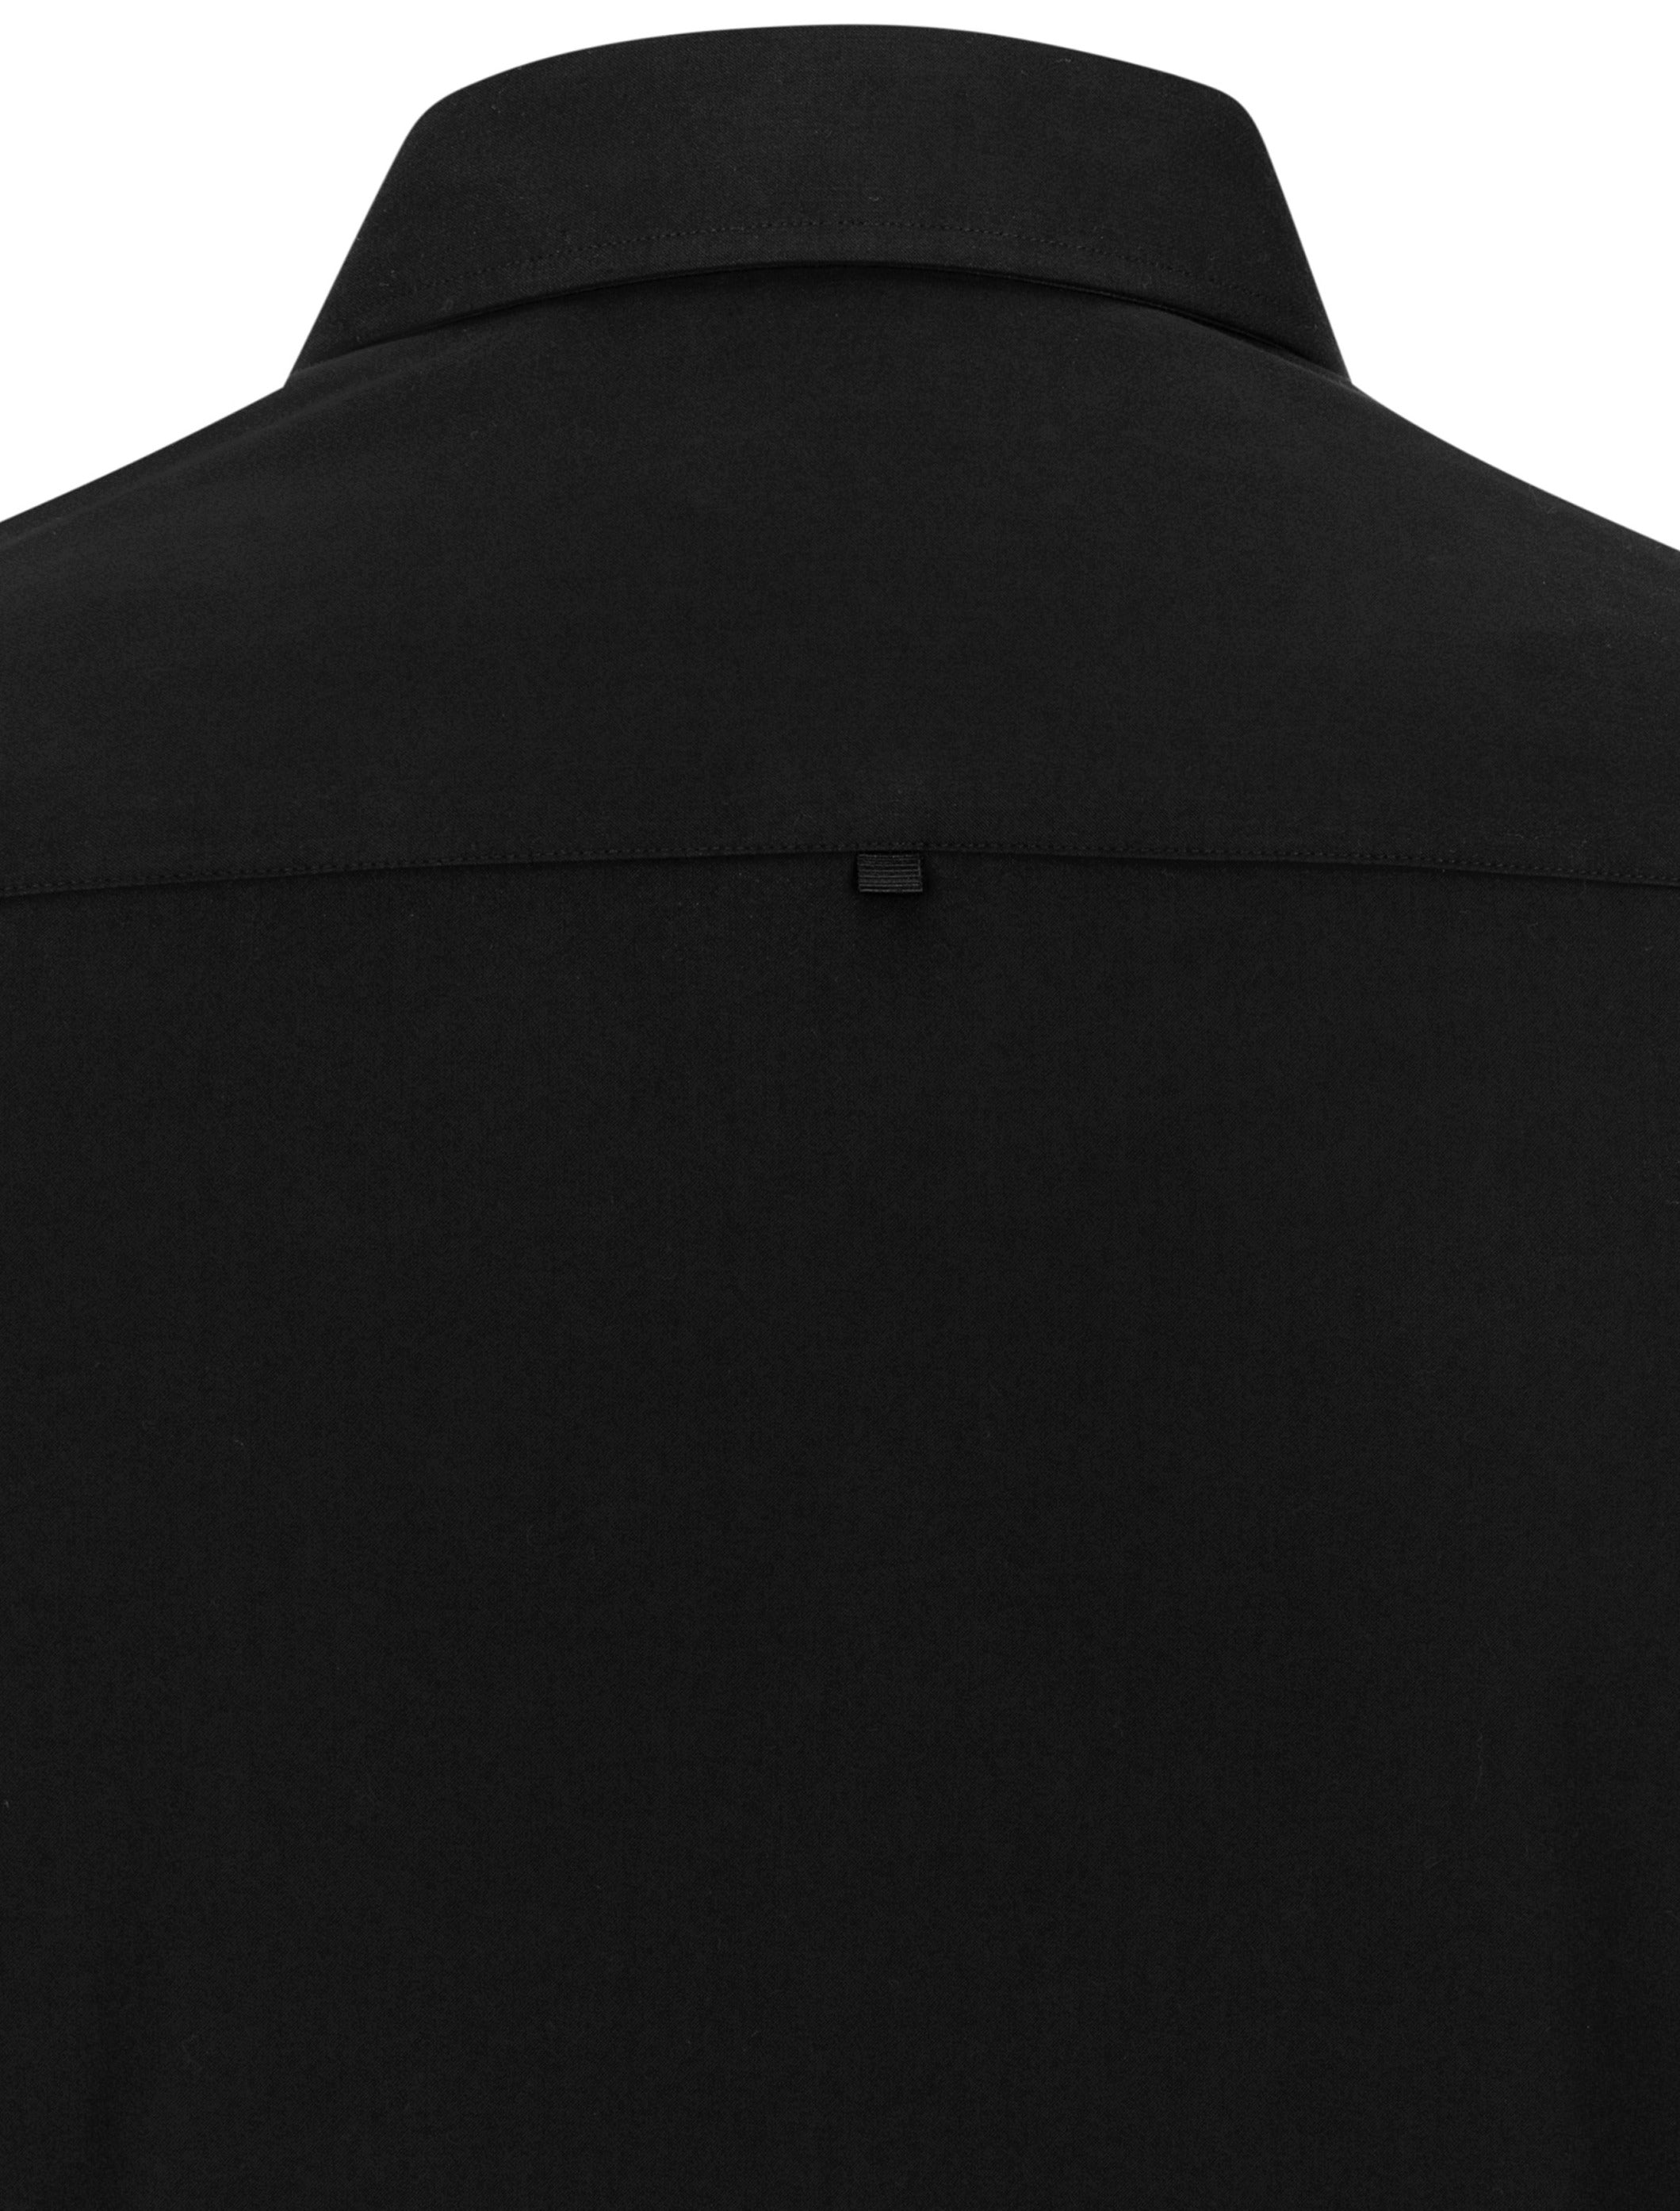 Black Dry Touch Sateen Long Sleeve Shirt